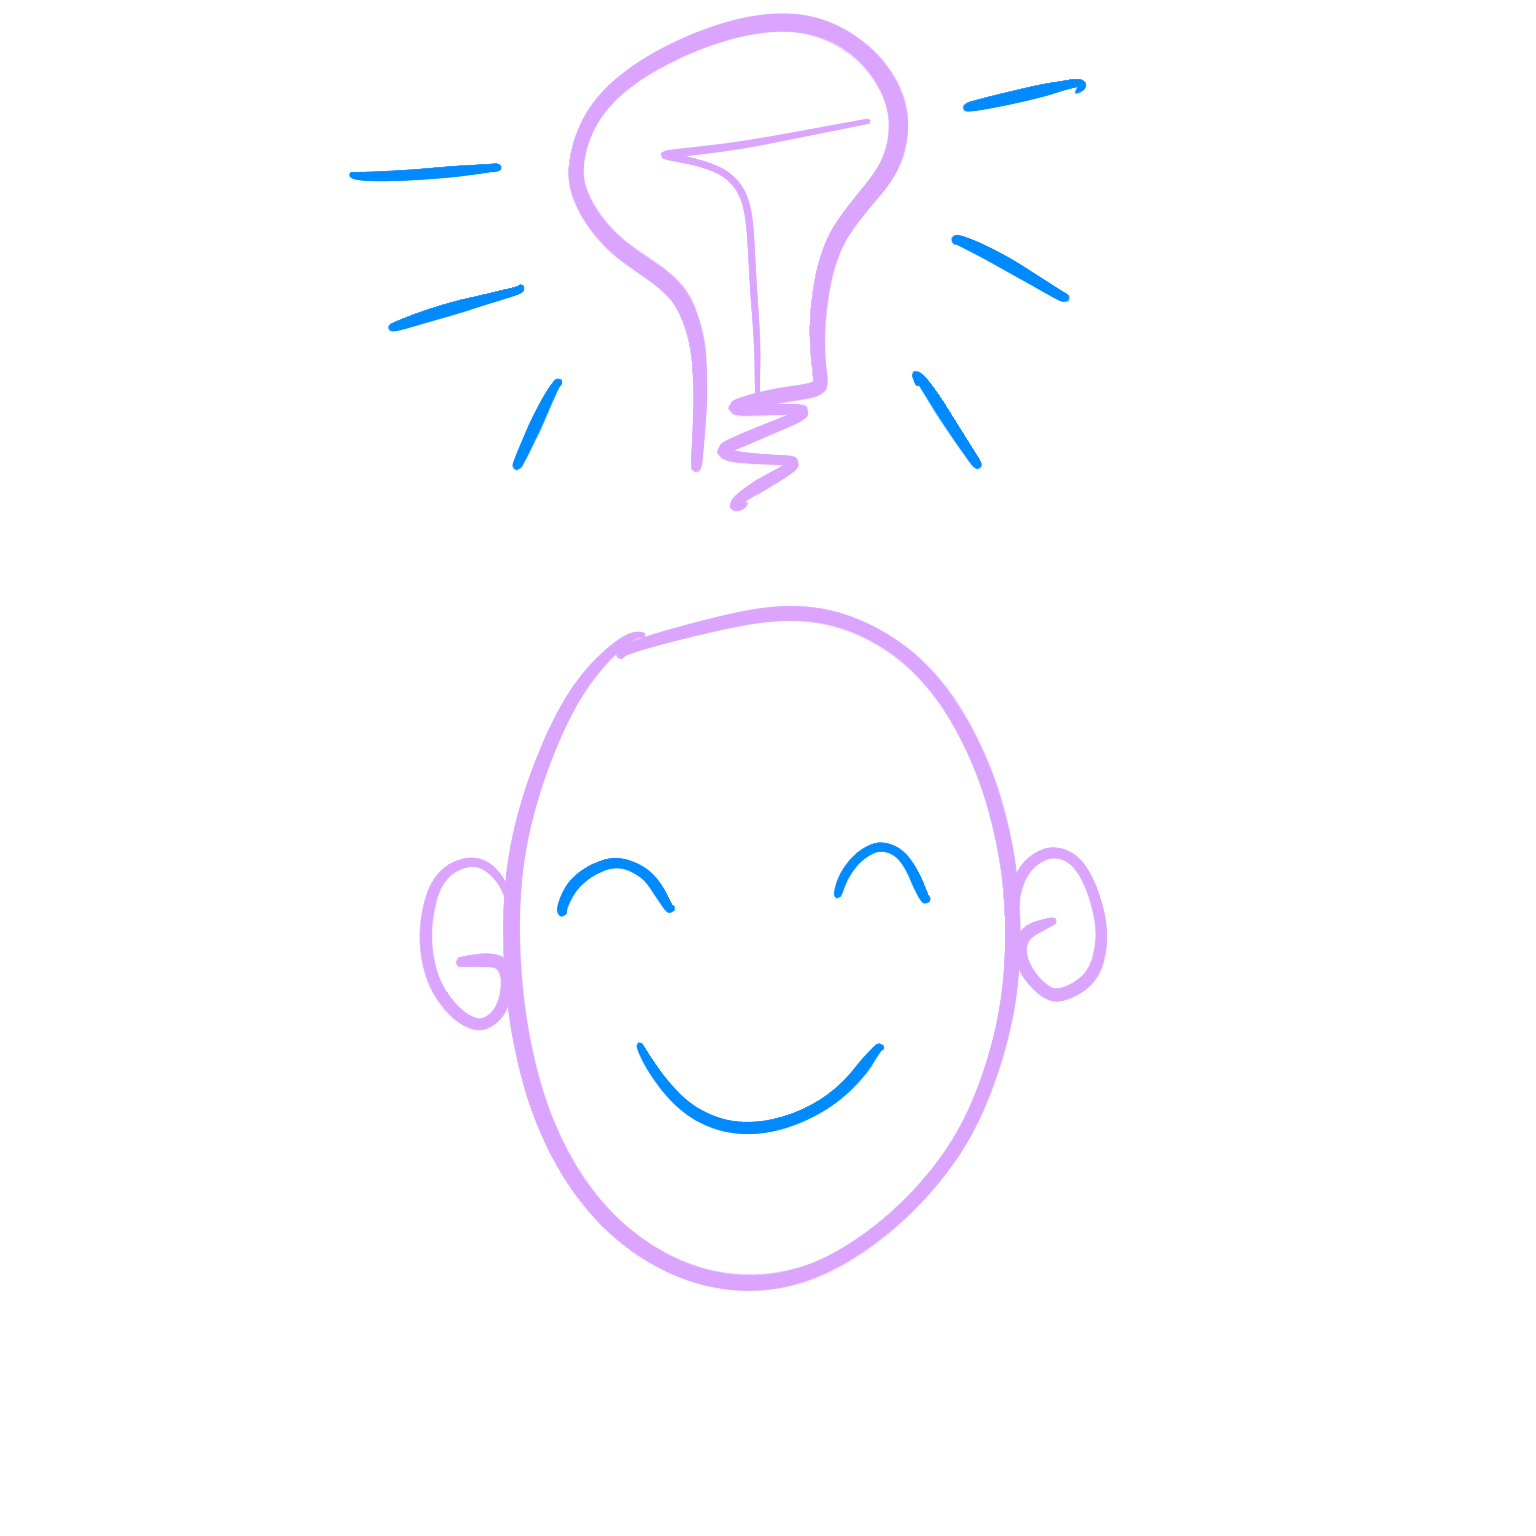 An image of a smiling face with an idea lightbulb above it